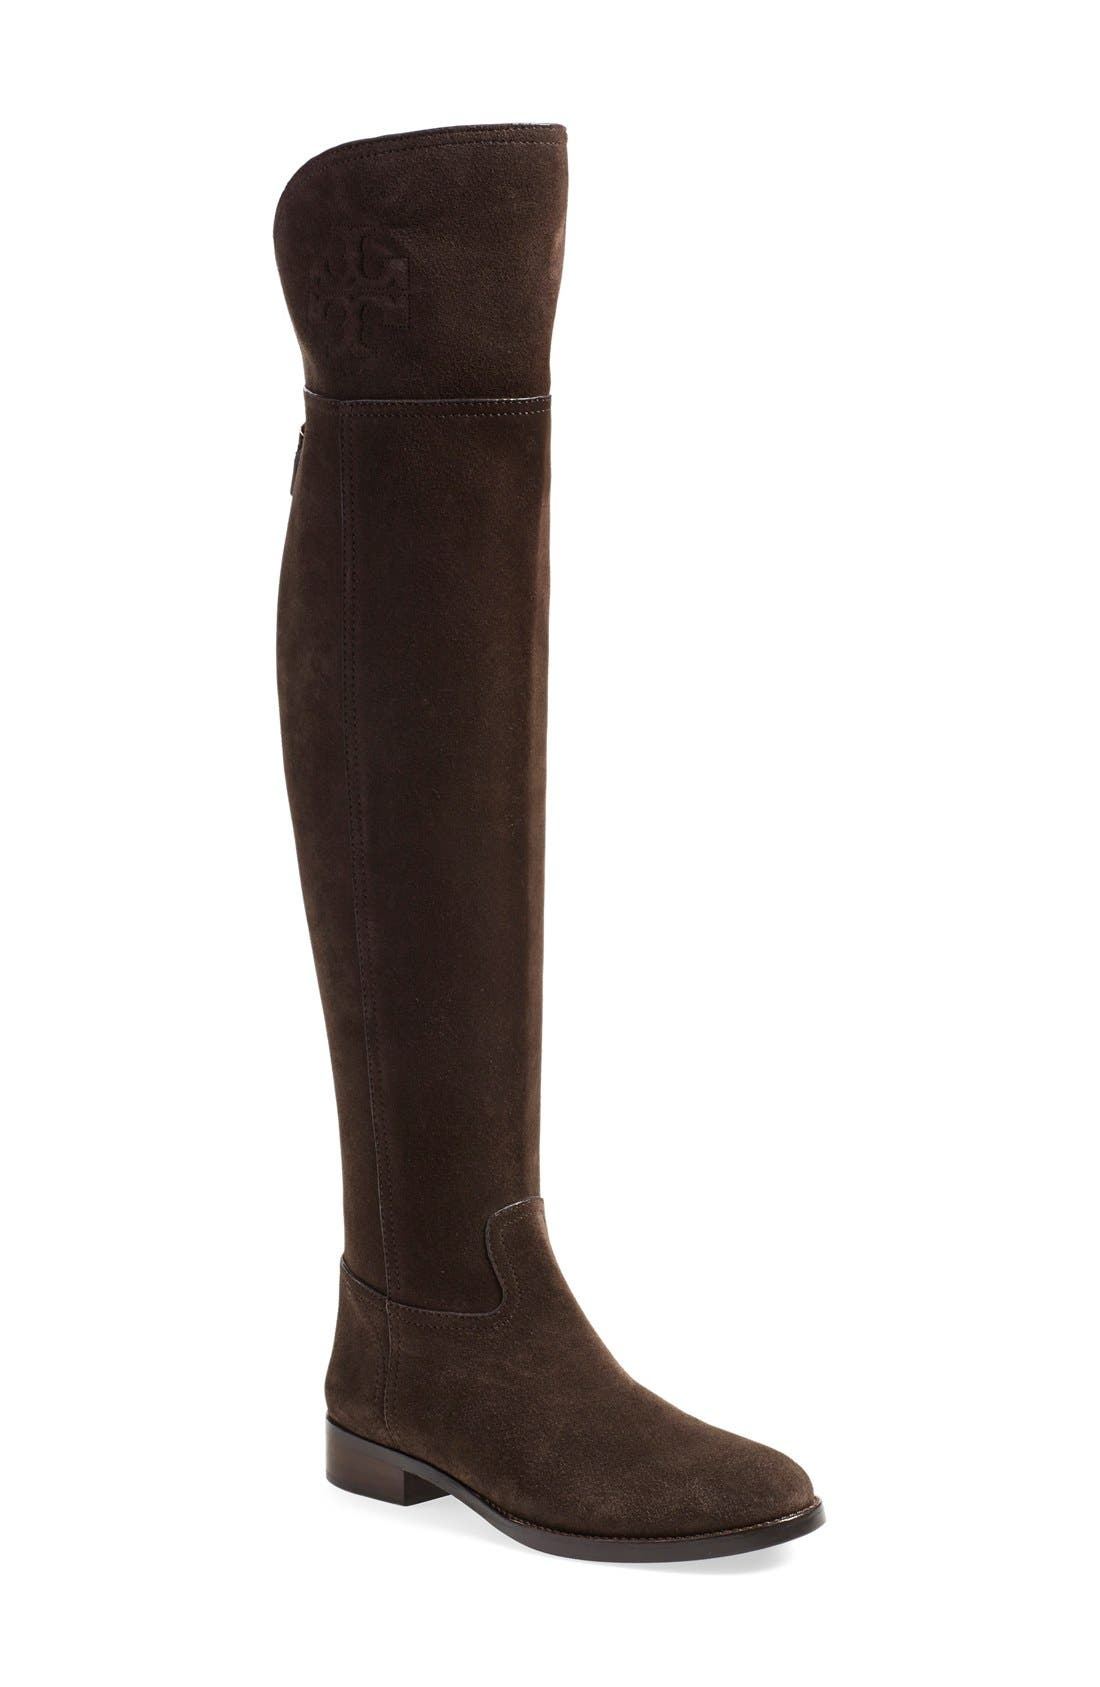 Alternate Image 1 Selected - Tory Burch 'Simone' Over the Knee Boot (Women)